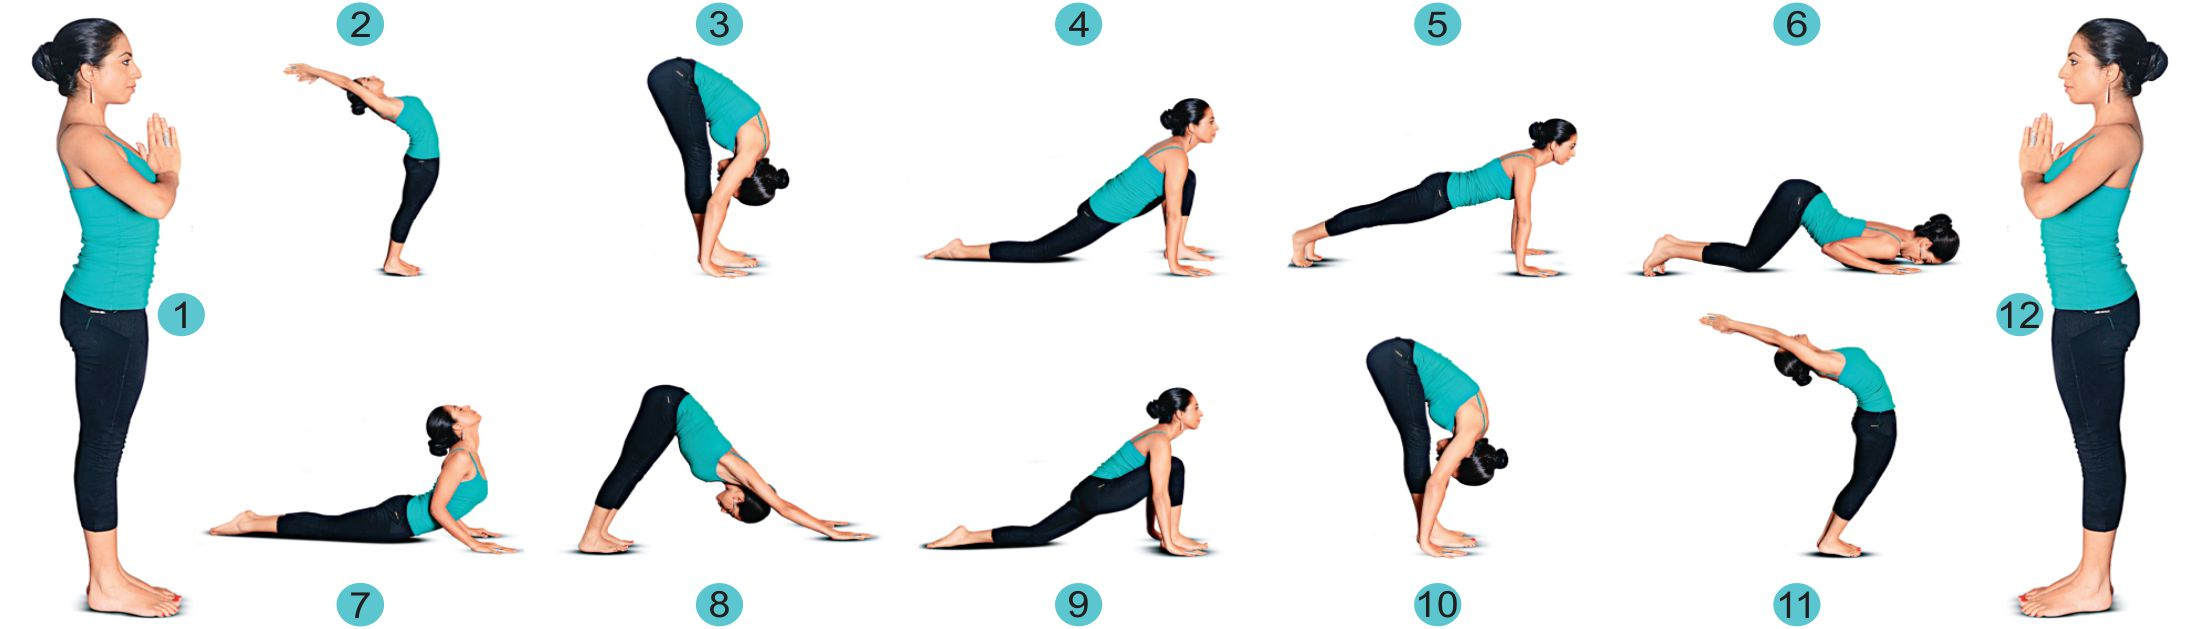 Step By Step Instructions To Do Surya Namaskar